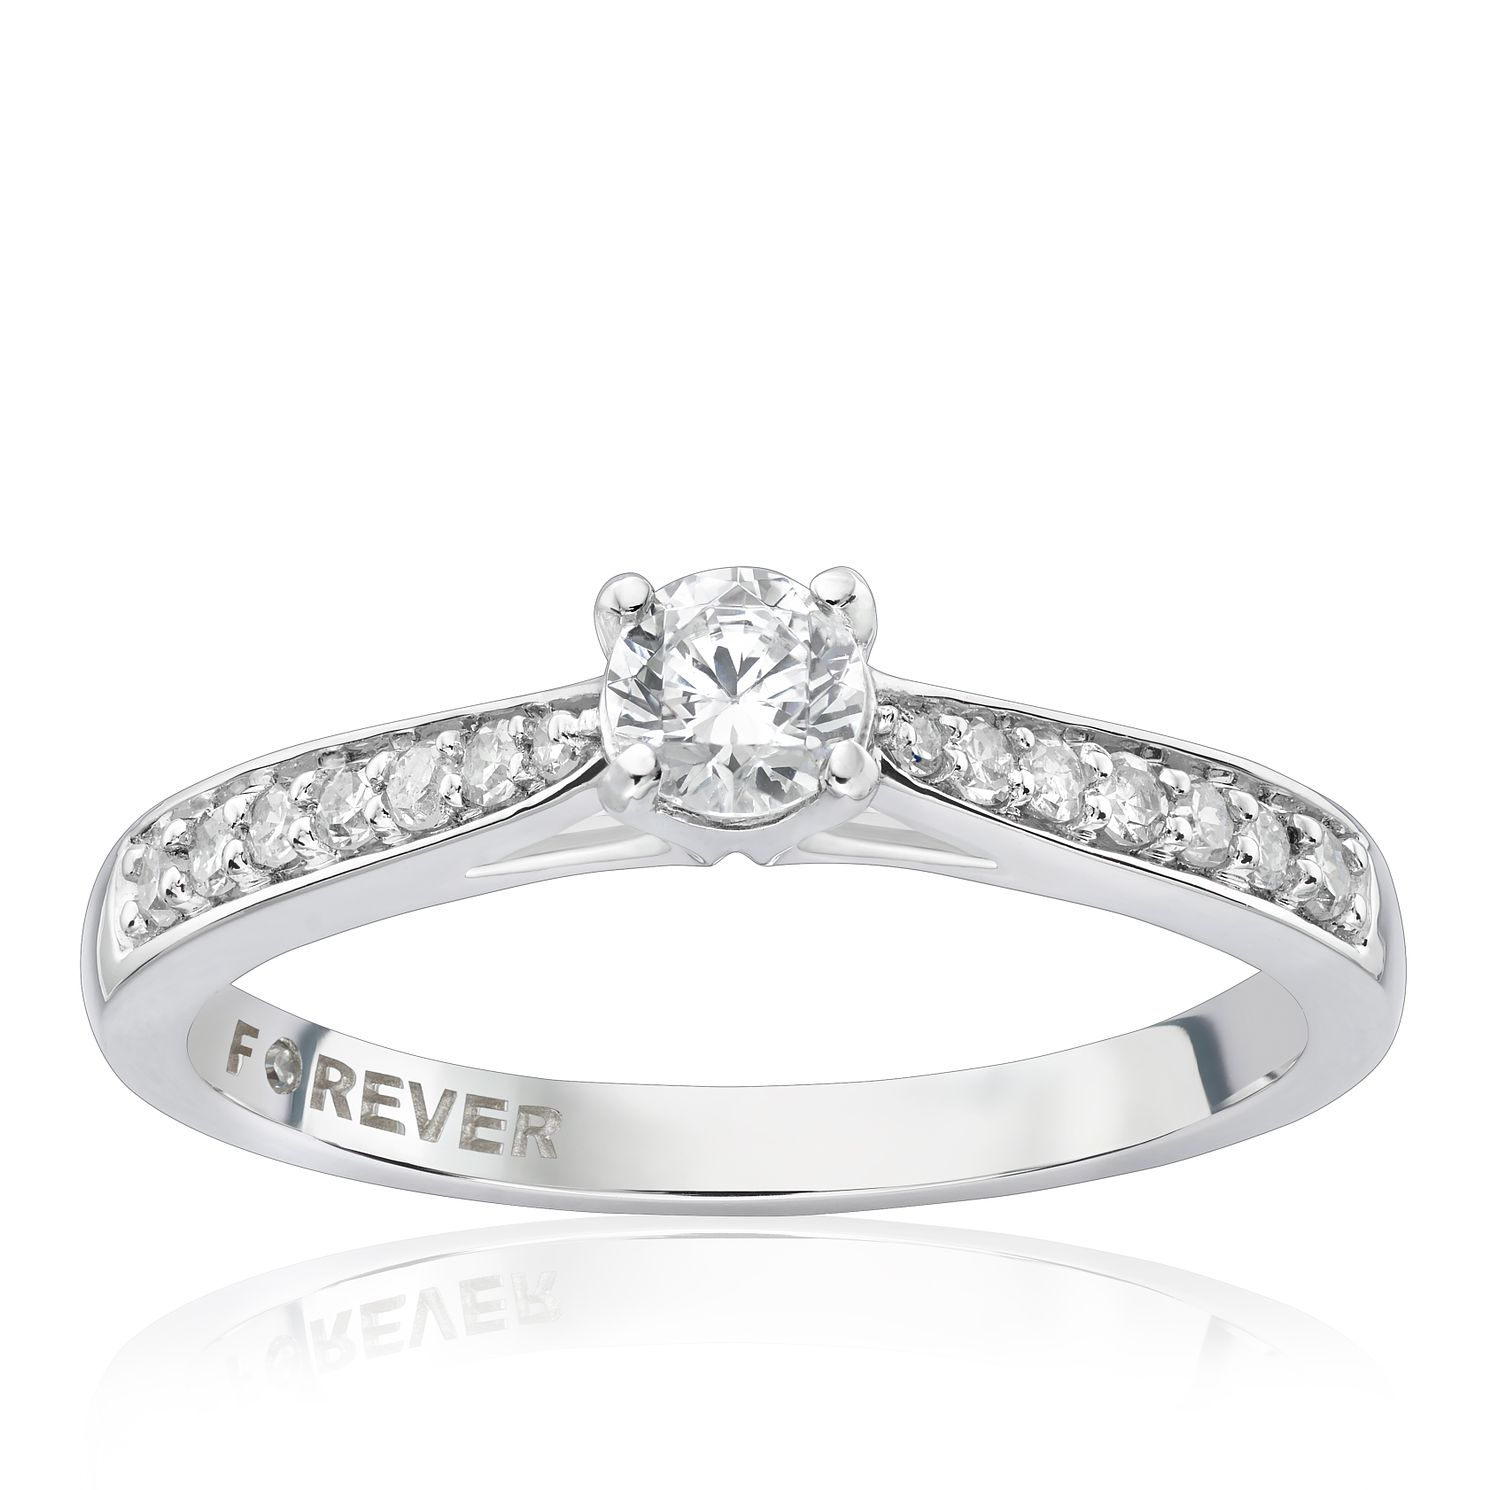 Platinum 1/3 Carat Forever Diamond Ring - Product number 4755707